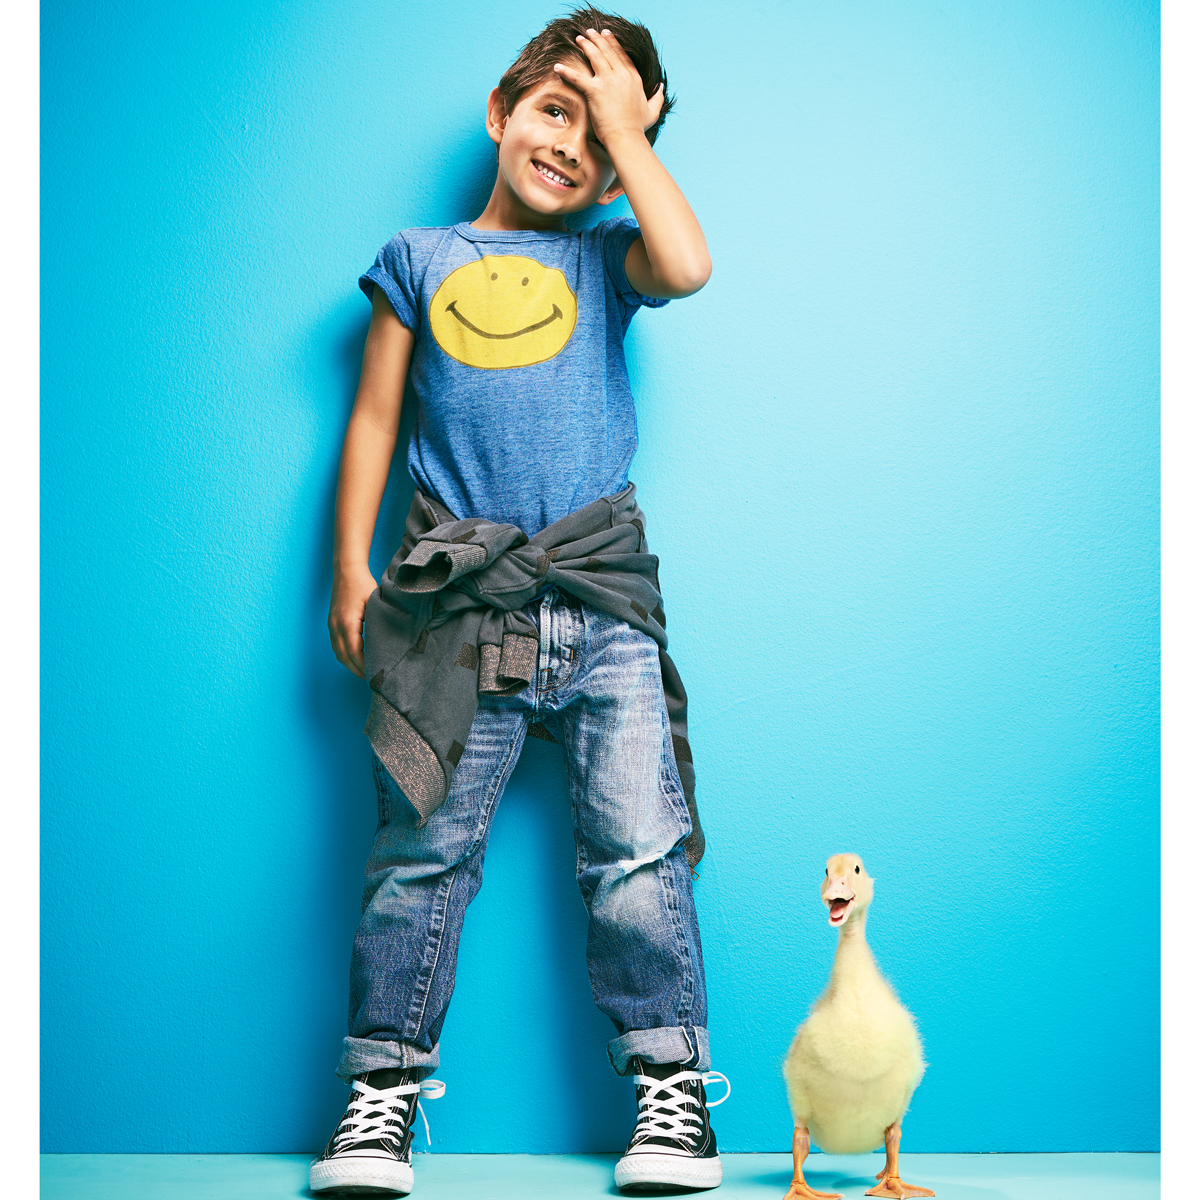 boy in smiley face t-shirt standing next to yellow duck